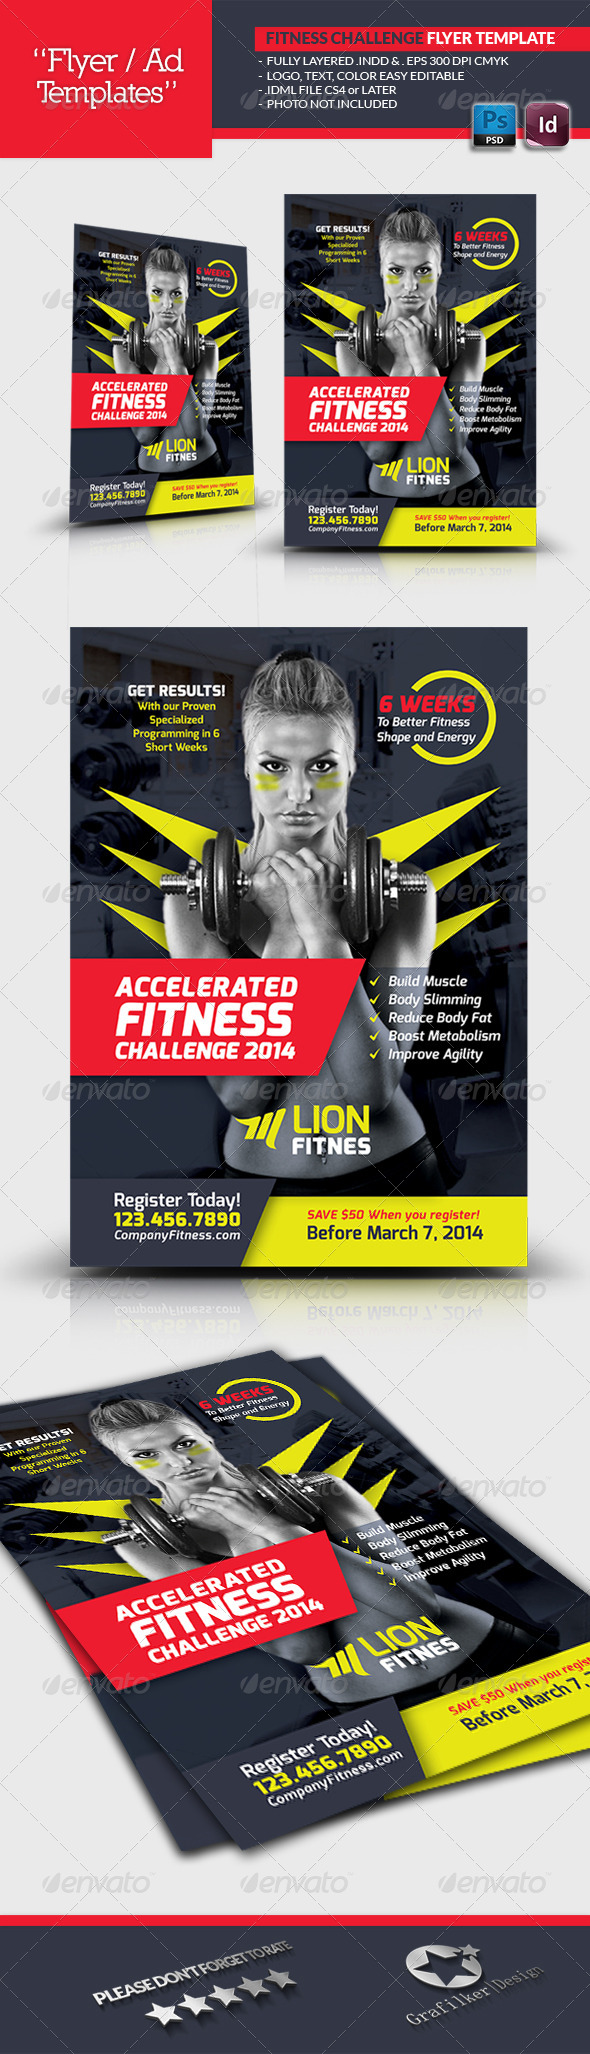 Fitness Challenge Flyer Template - Corporate Flyers